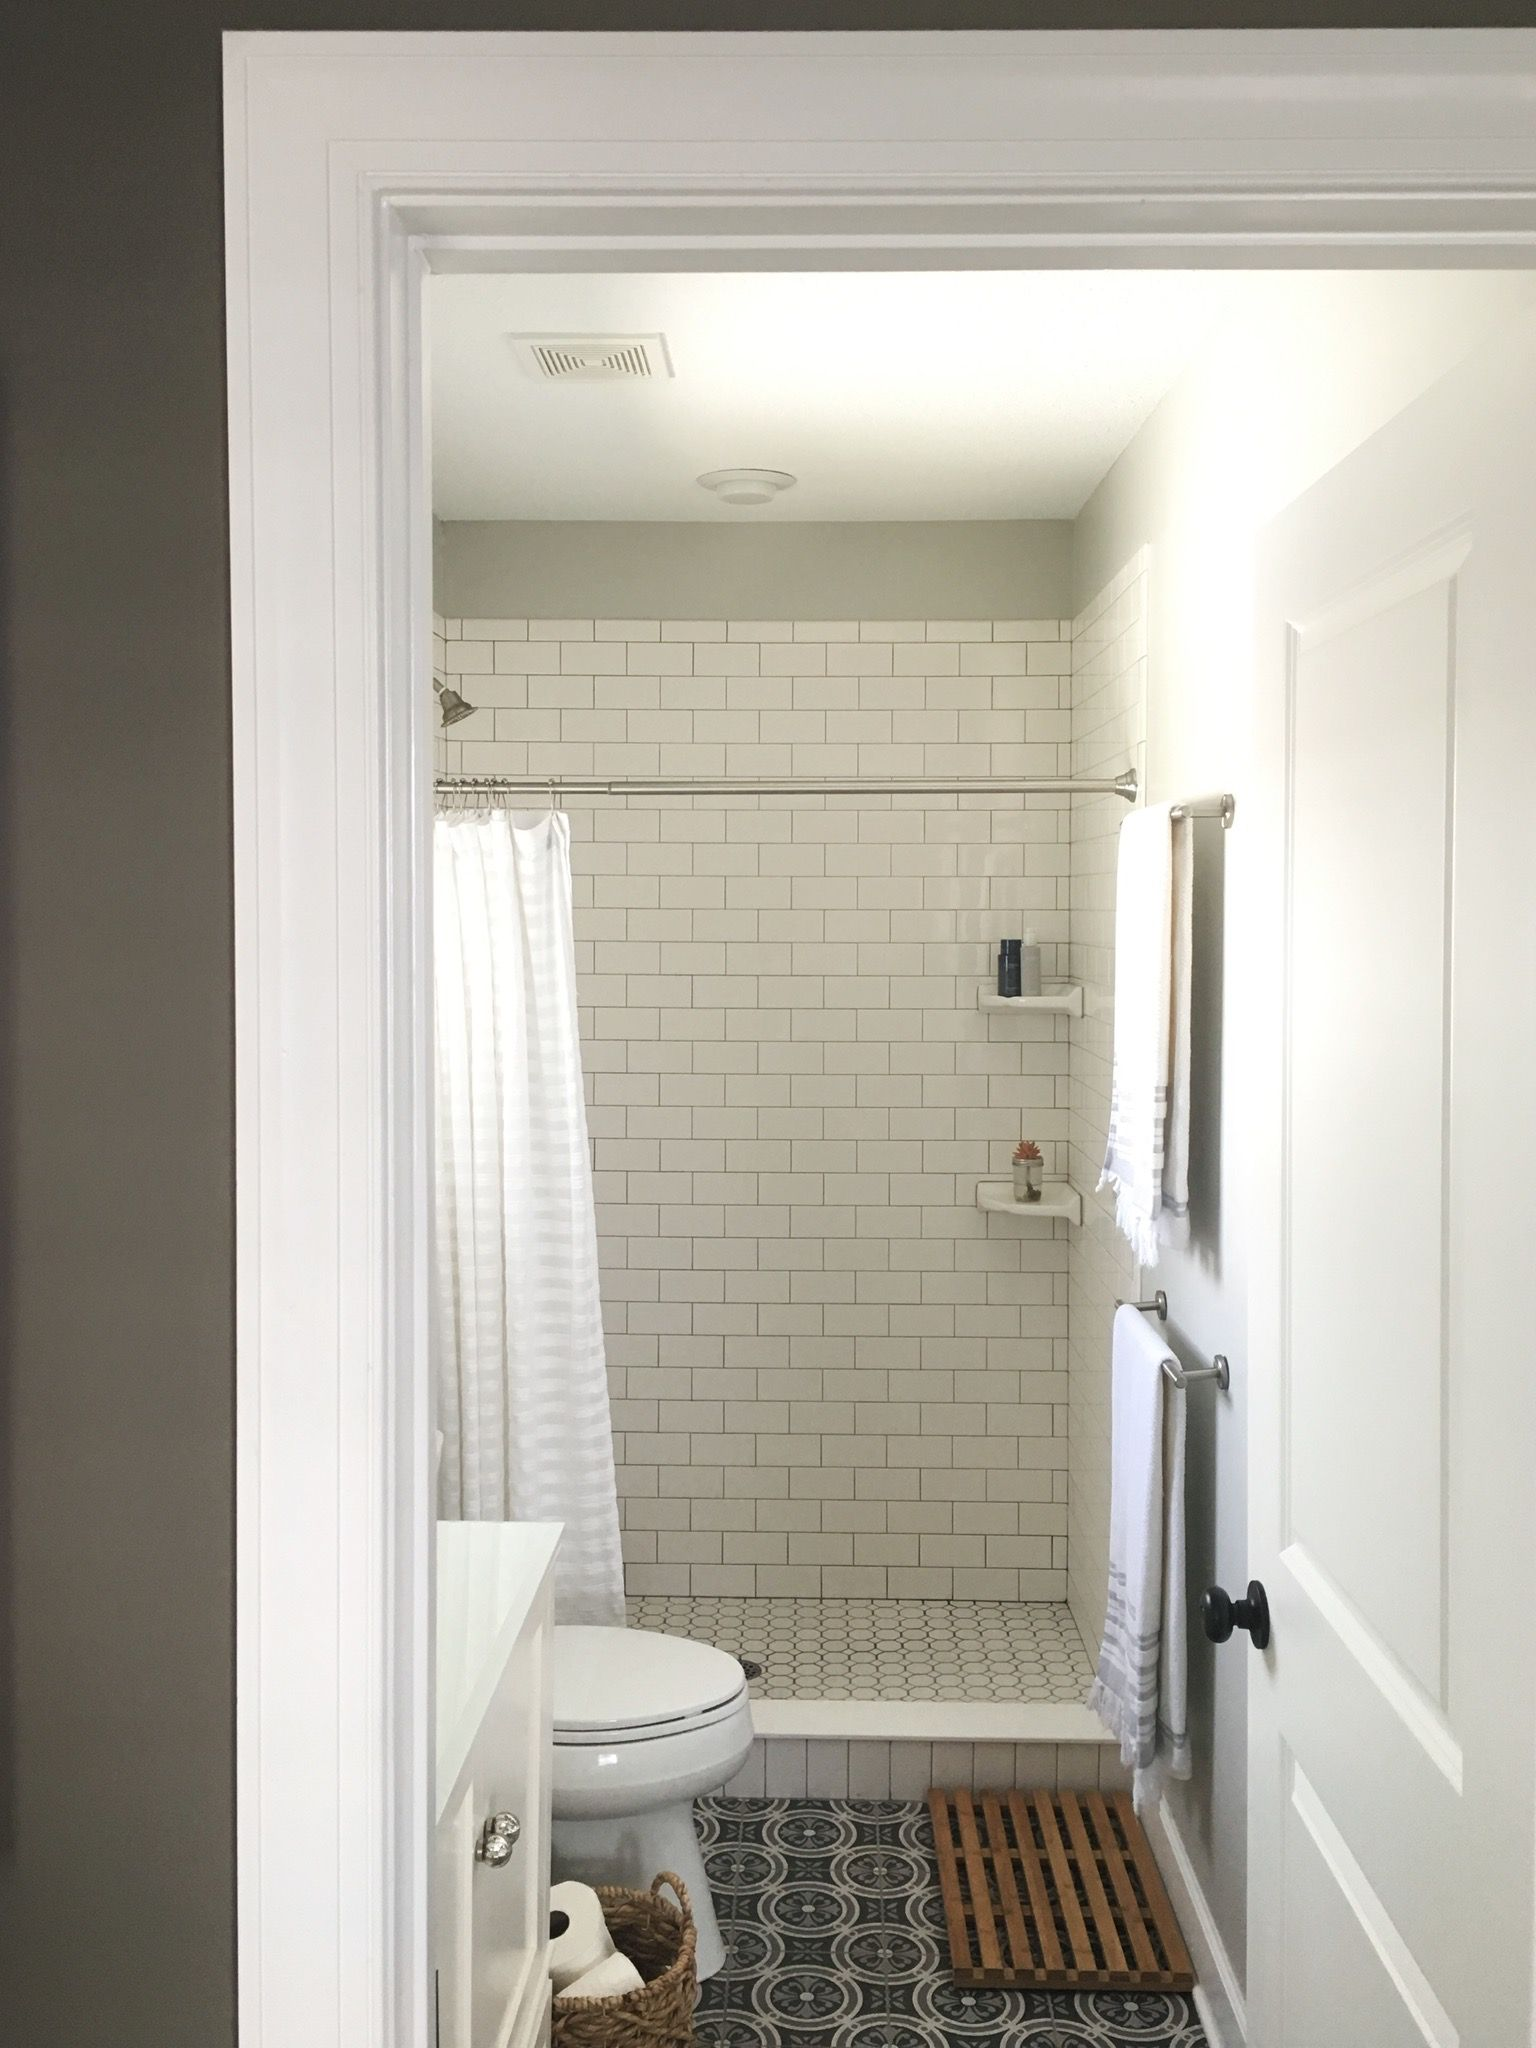 Step By Step Guide To Choosing Materials For A Bathroom Renovation